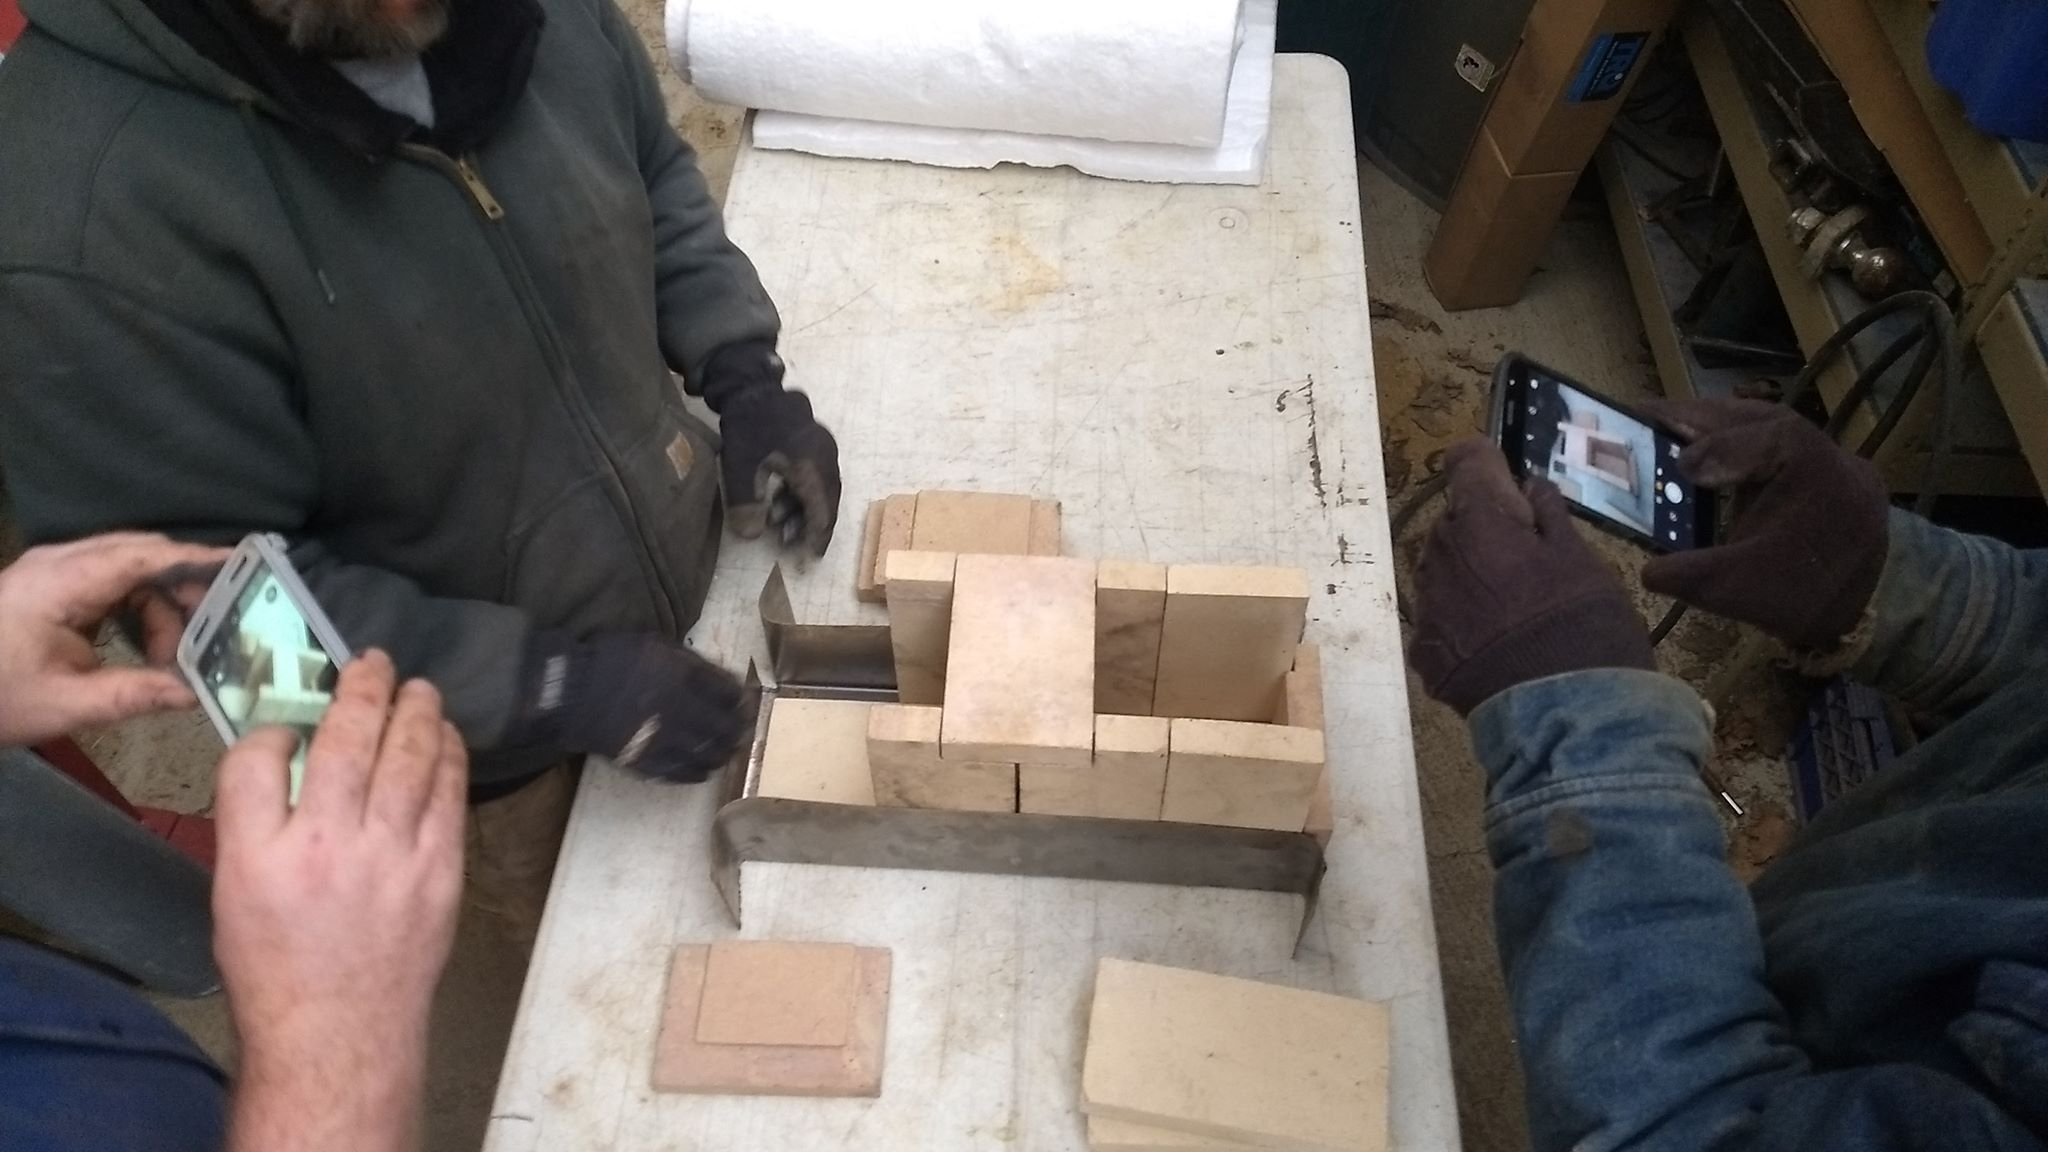 Positioning the bricks for the burn chamber